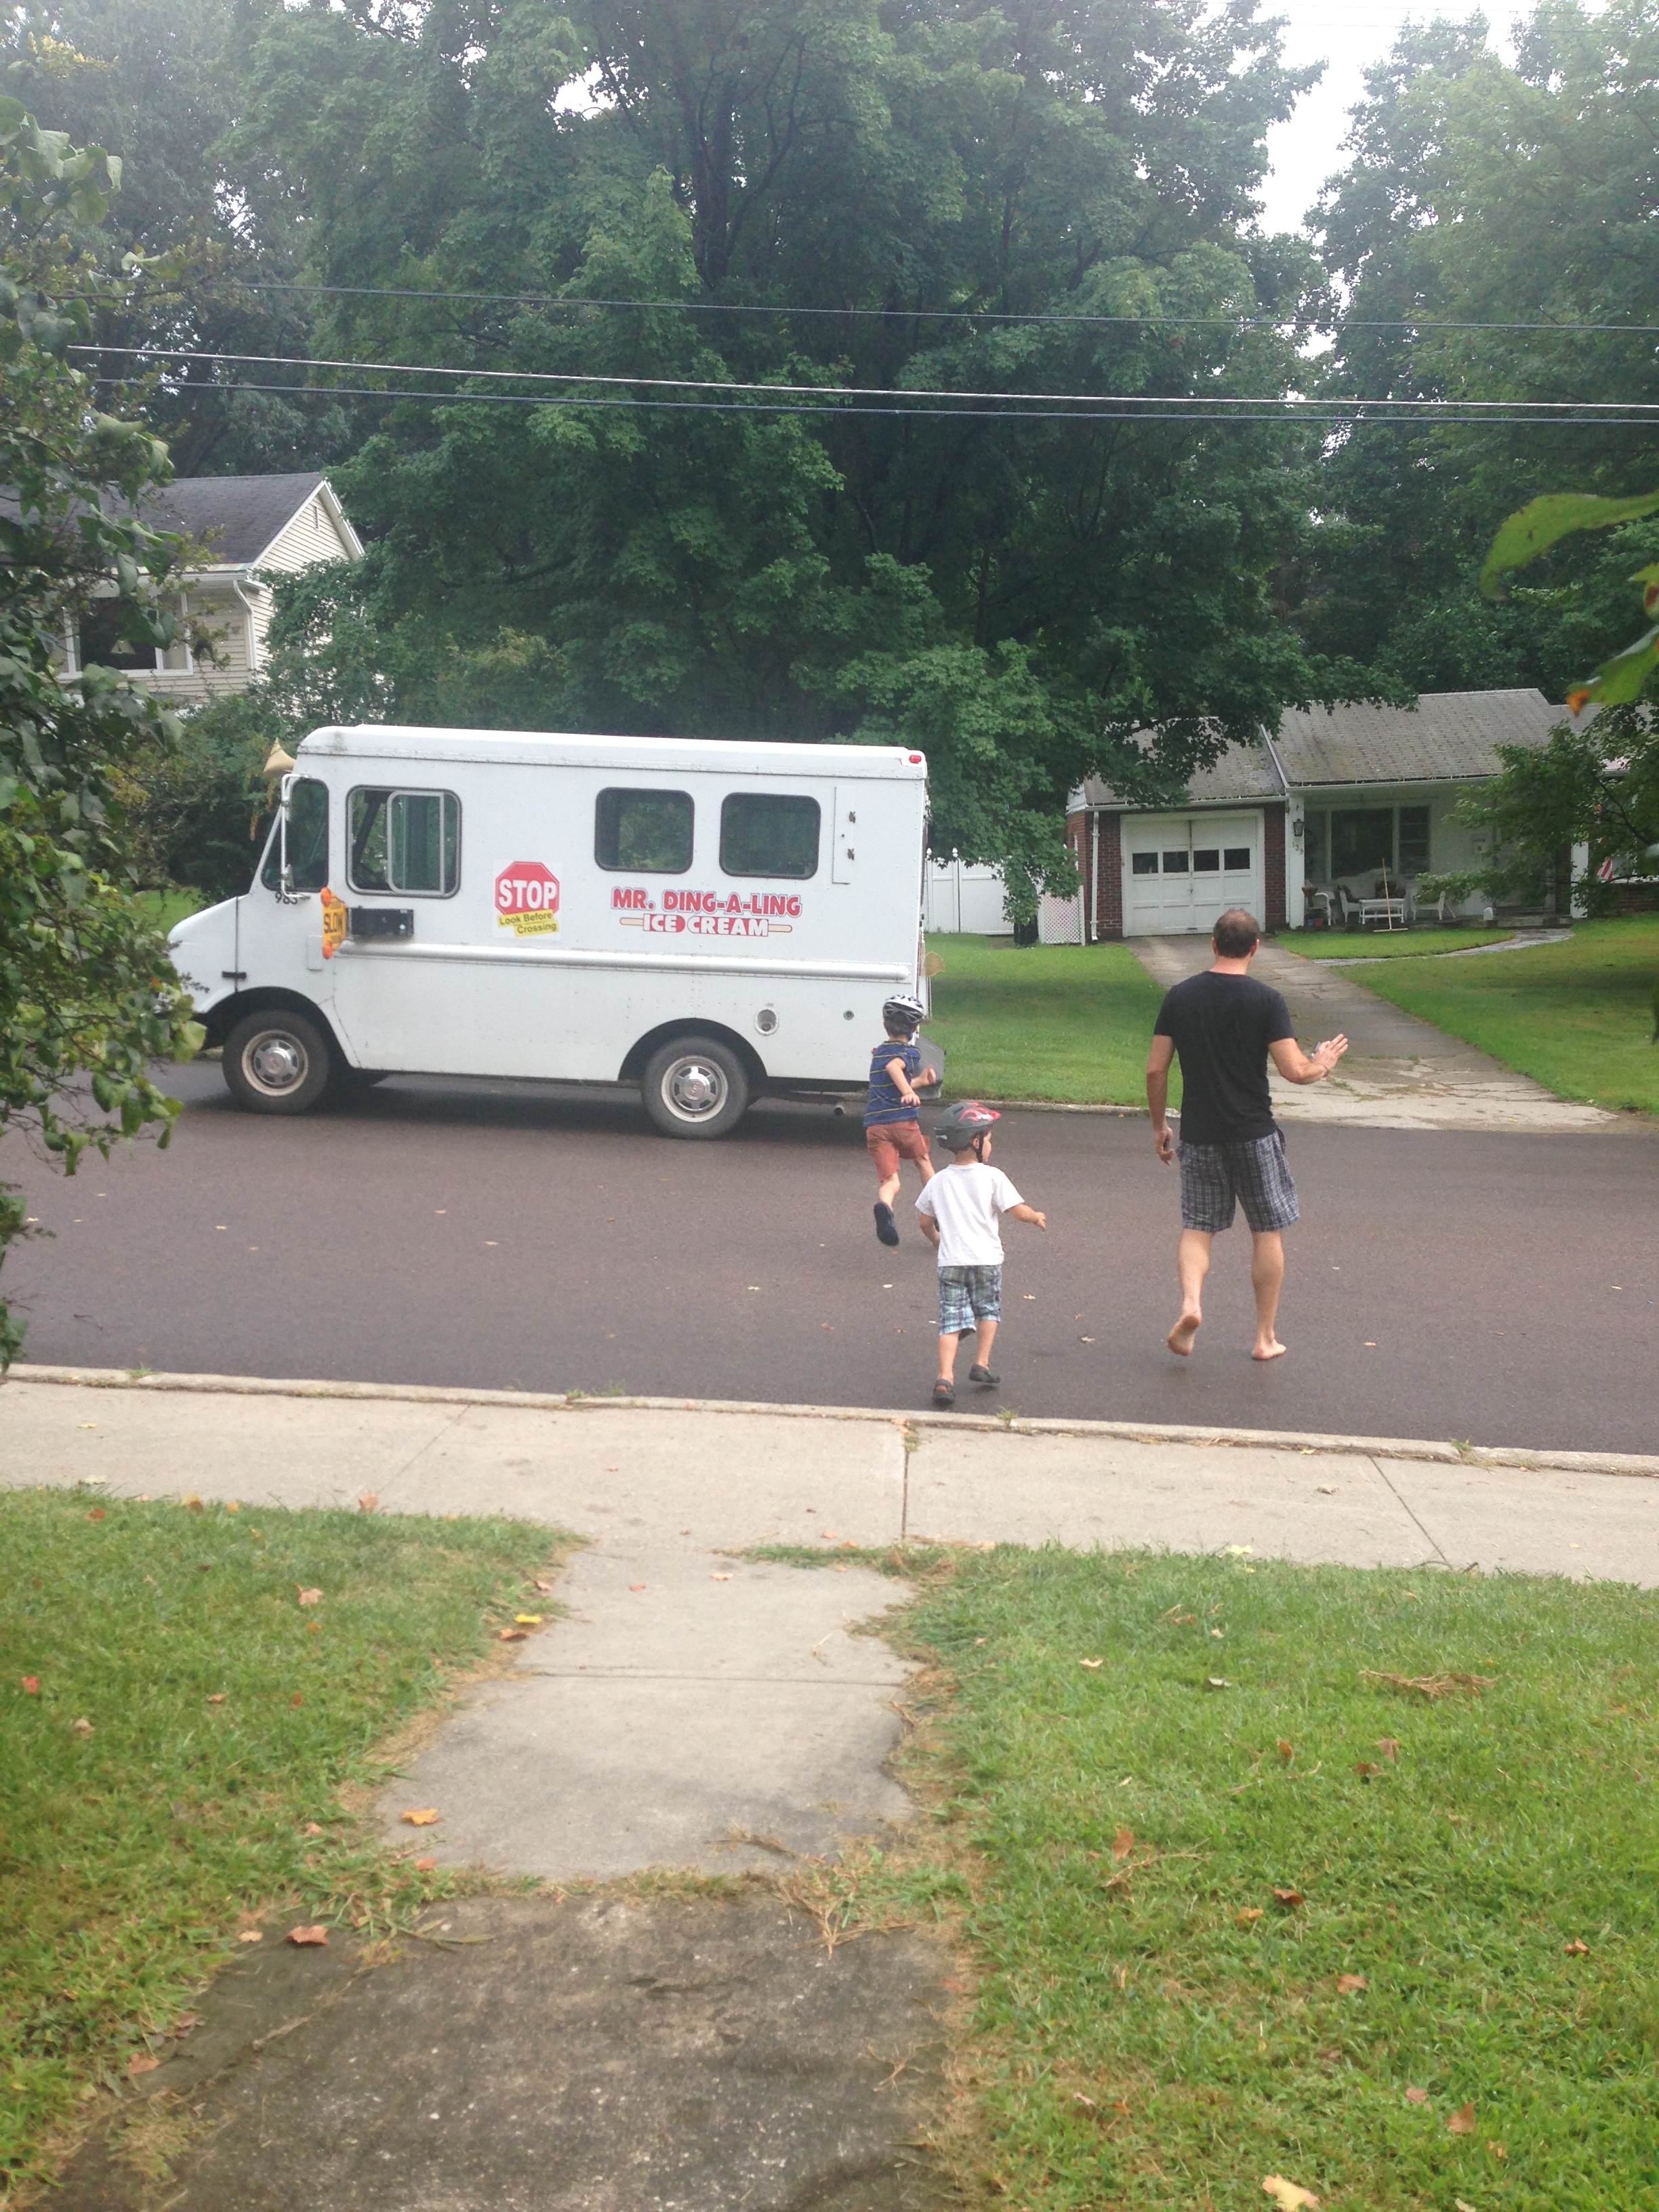 August_IceCreamTruck